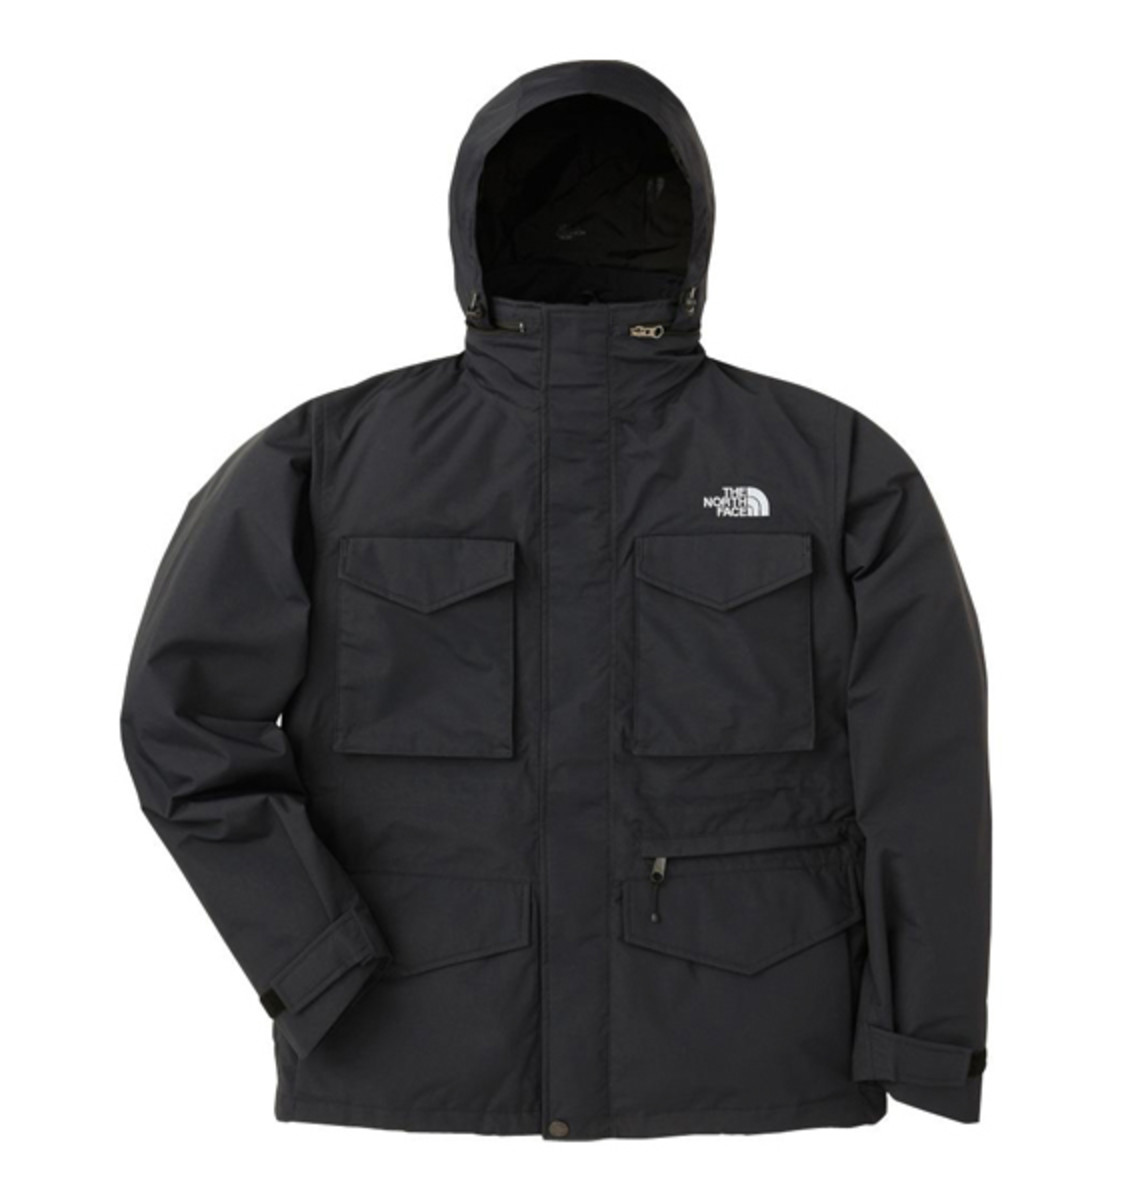 the-north-face-panther-jacket-01